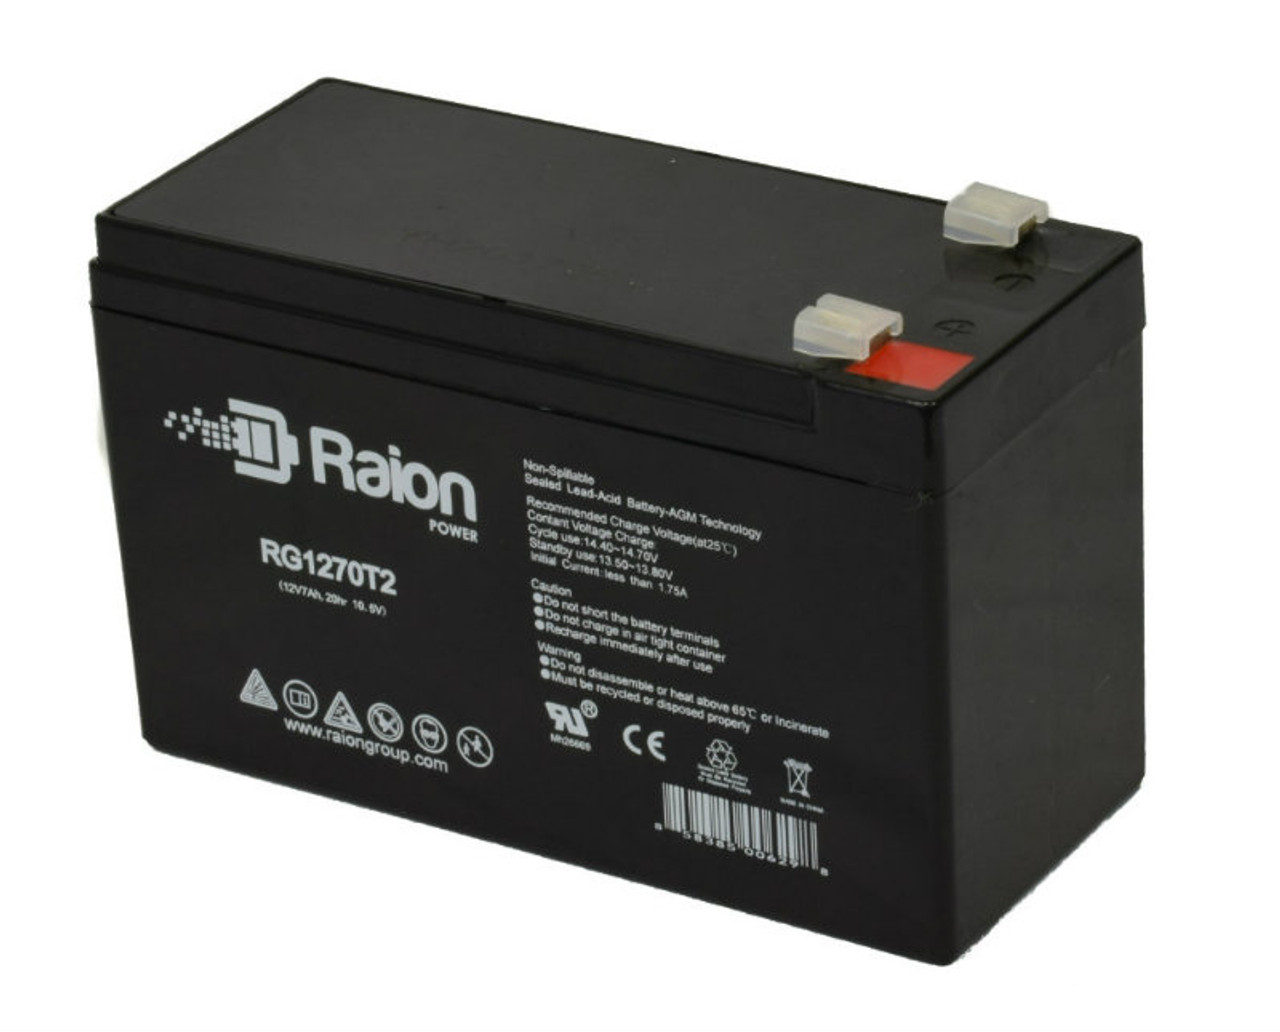 Raion Power RG1270T1 Replacement Battery for FirstPower FP1270D